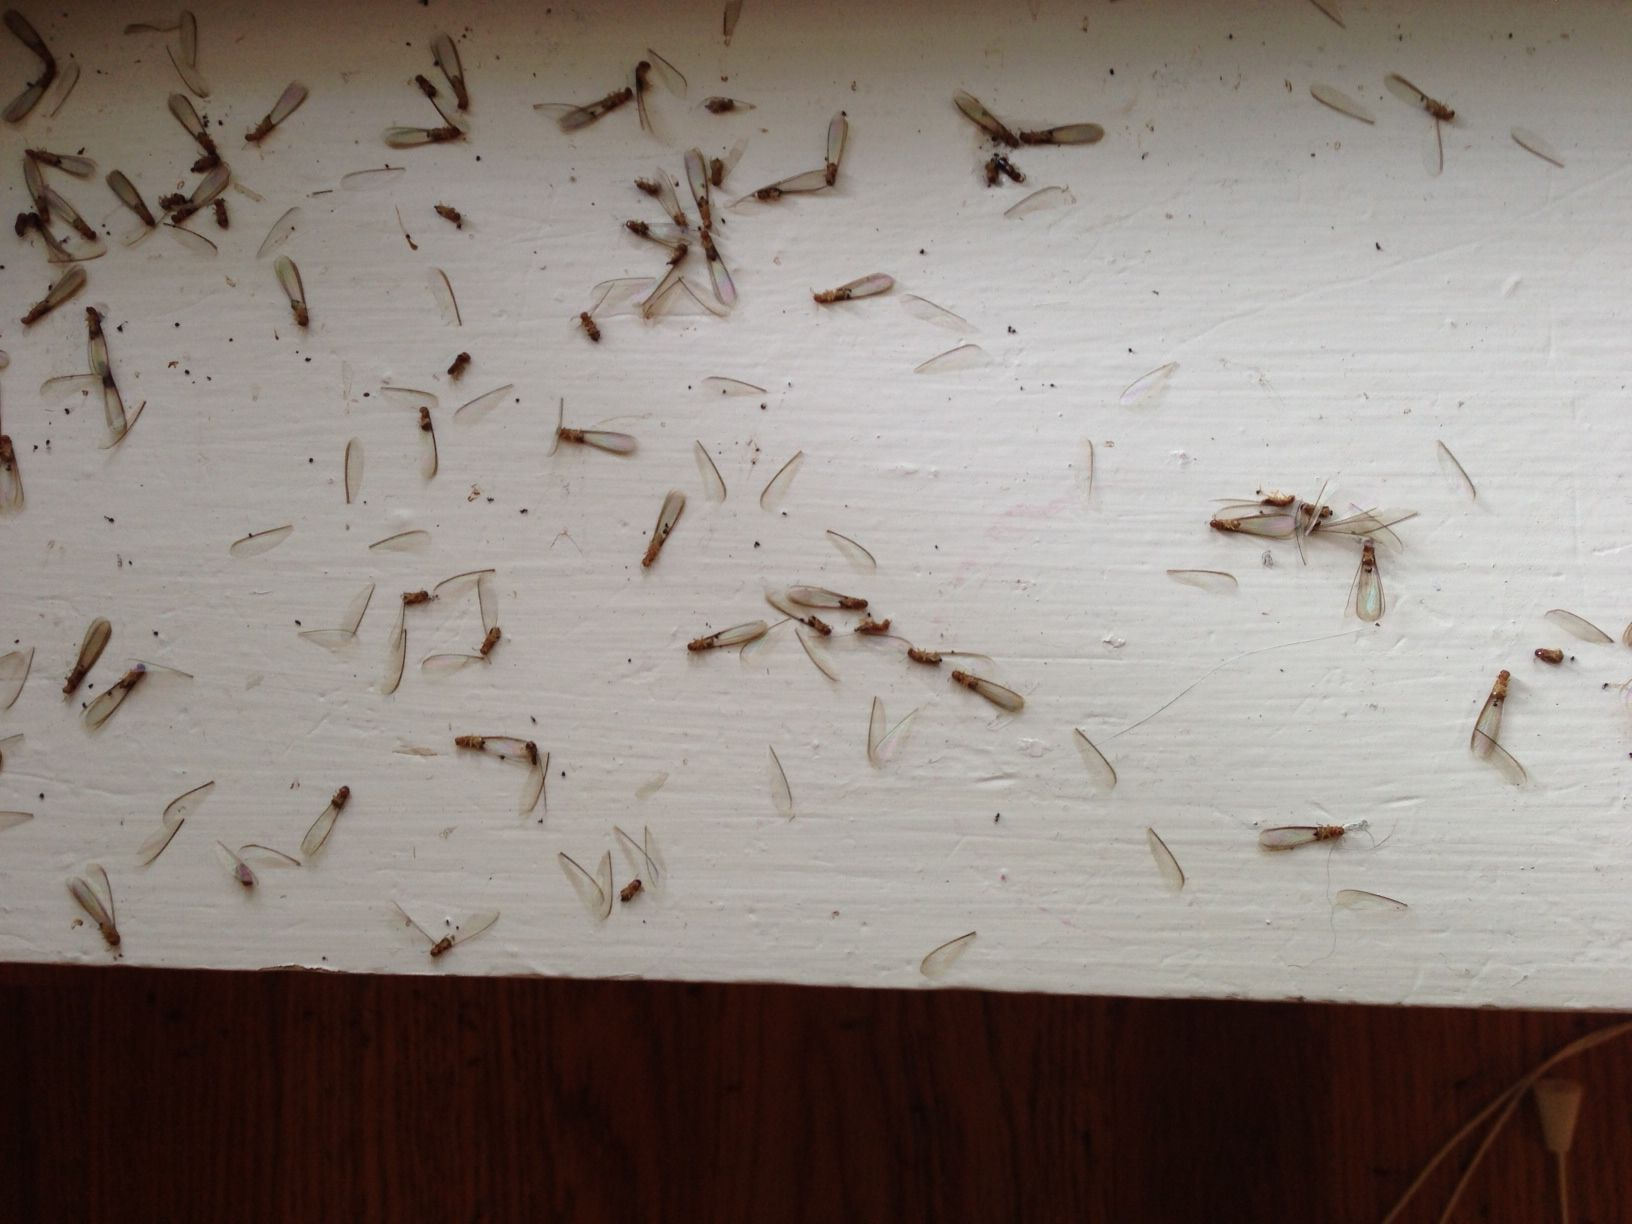 Drywood termite swarmers they are attracted to light